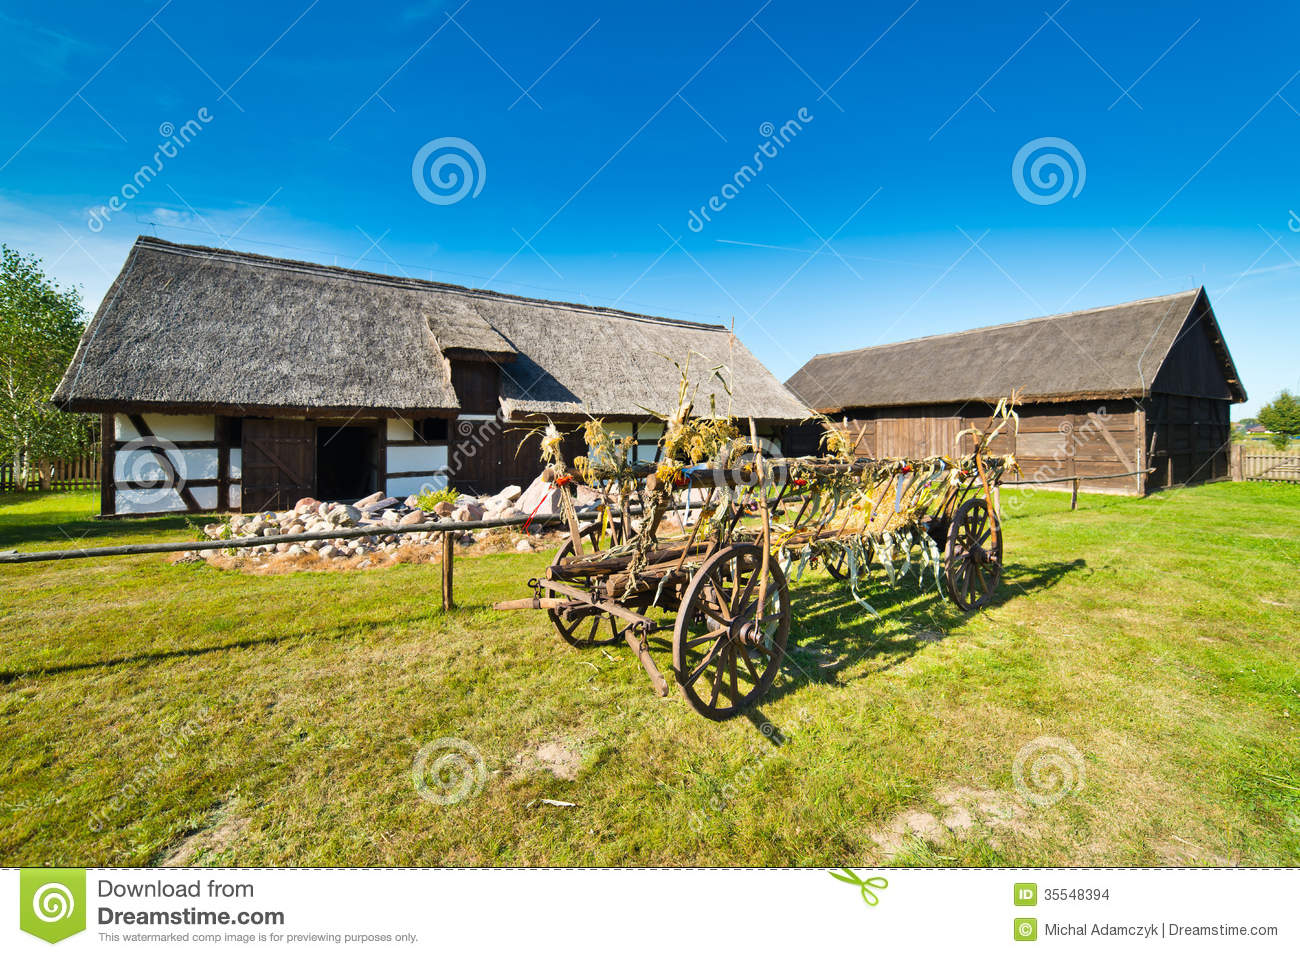 Old Rural Barn In Poland And Threshing machine XIXth Century Stock Image